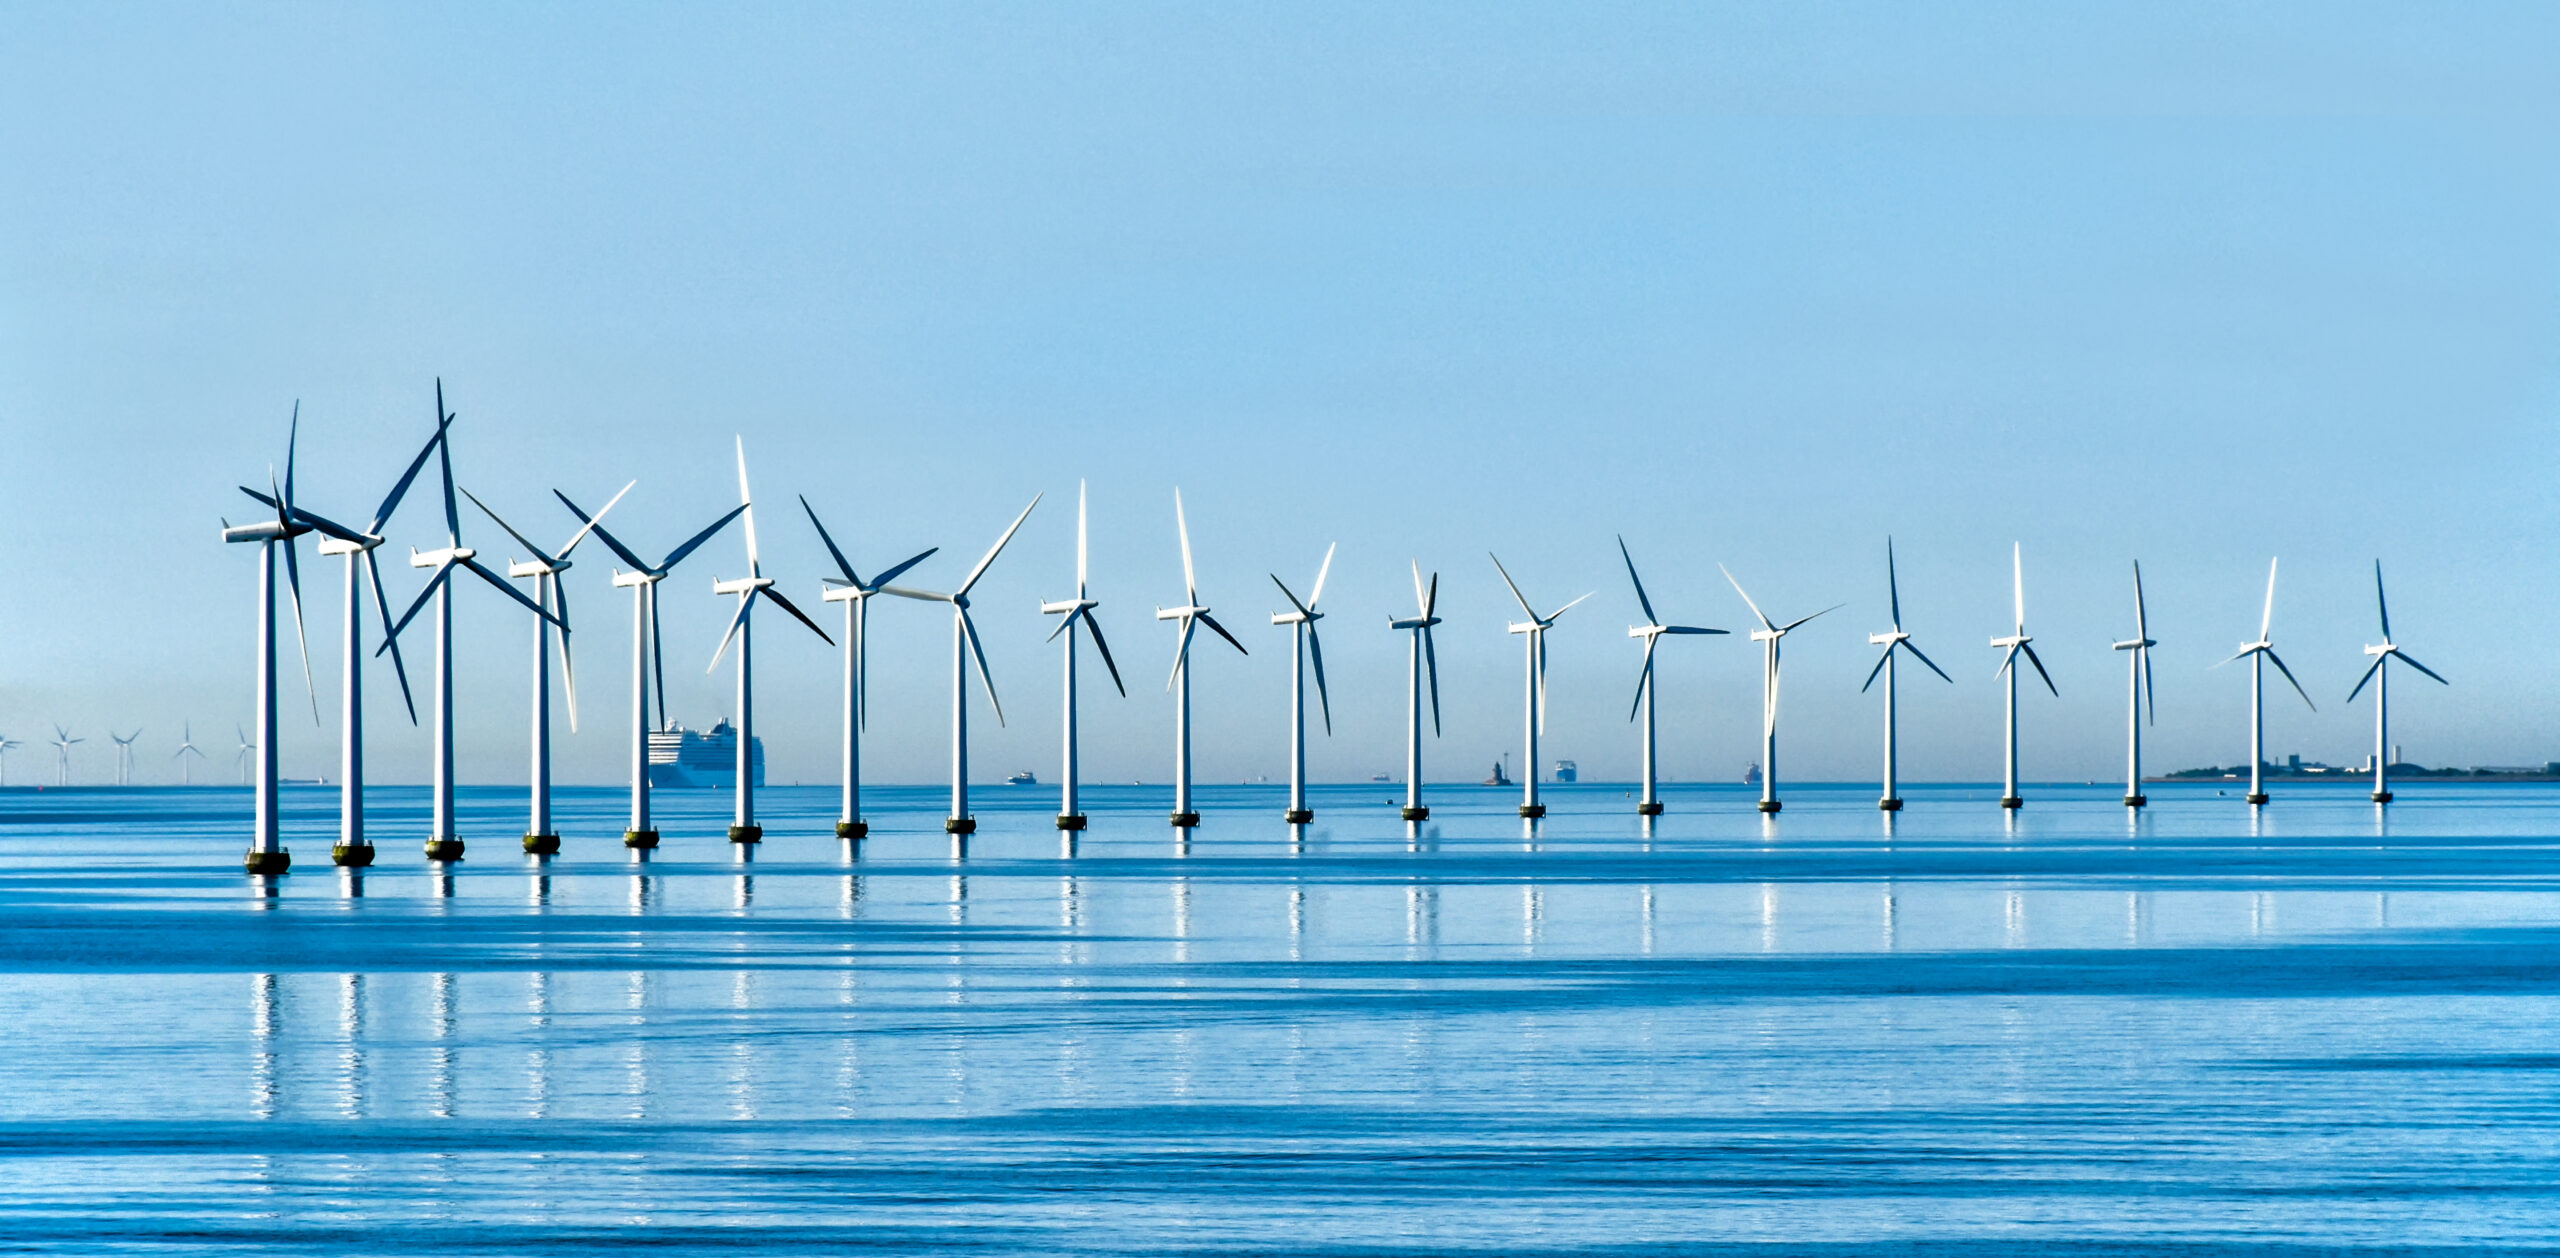 Positive Screening aims to 'promote the good' in areas such as renewables.